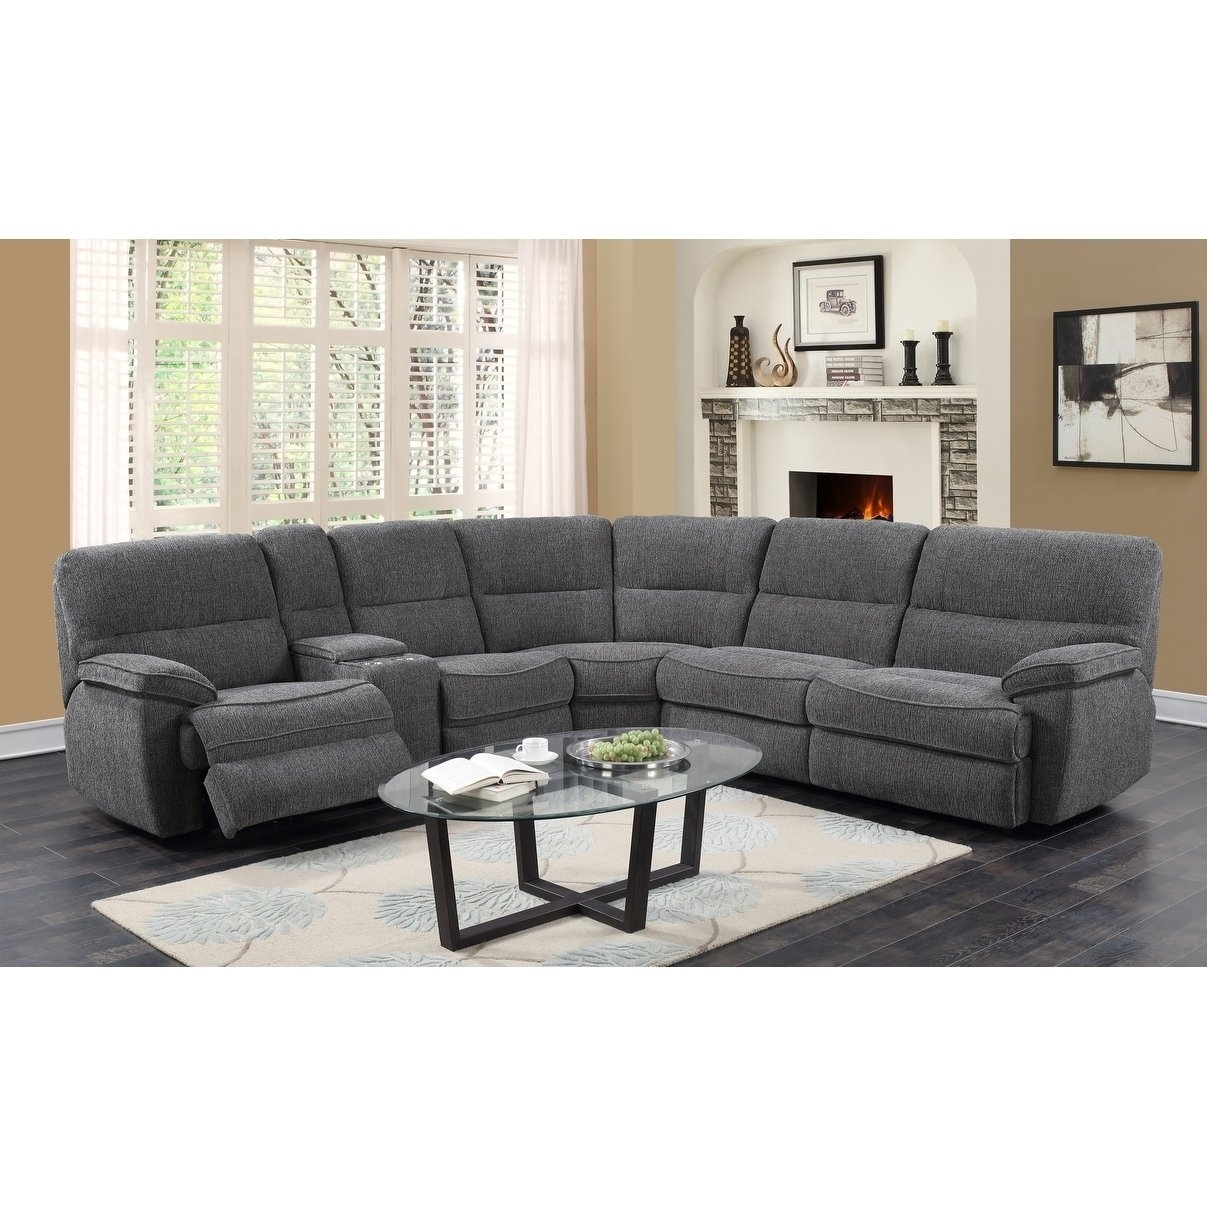 Shop Emerald Home Aurora Platinum 3 Piece Sleeper Sectional – Free Within Aurora 2 Piece Sectionals (Image 21 of 25)